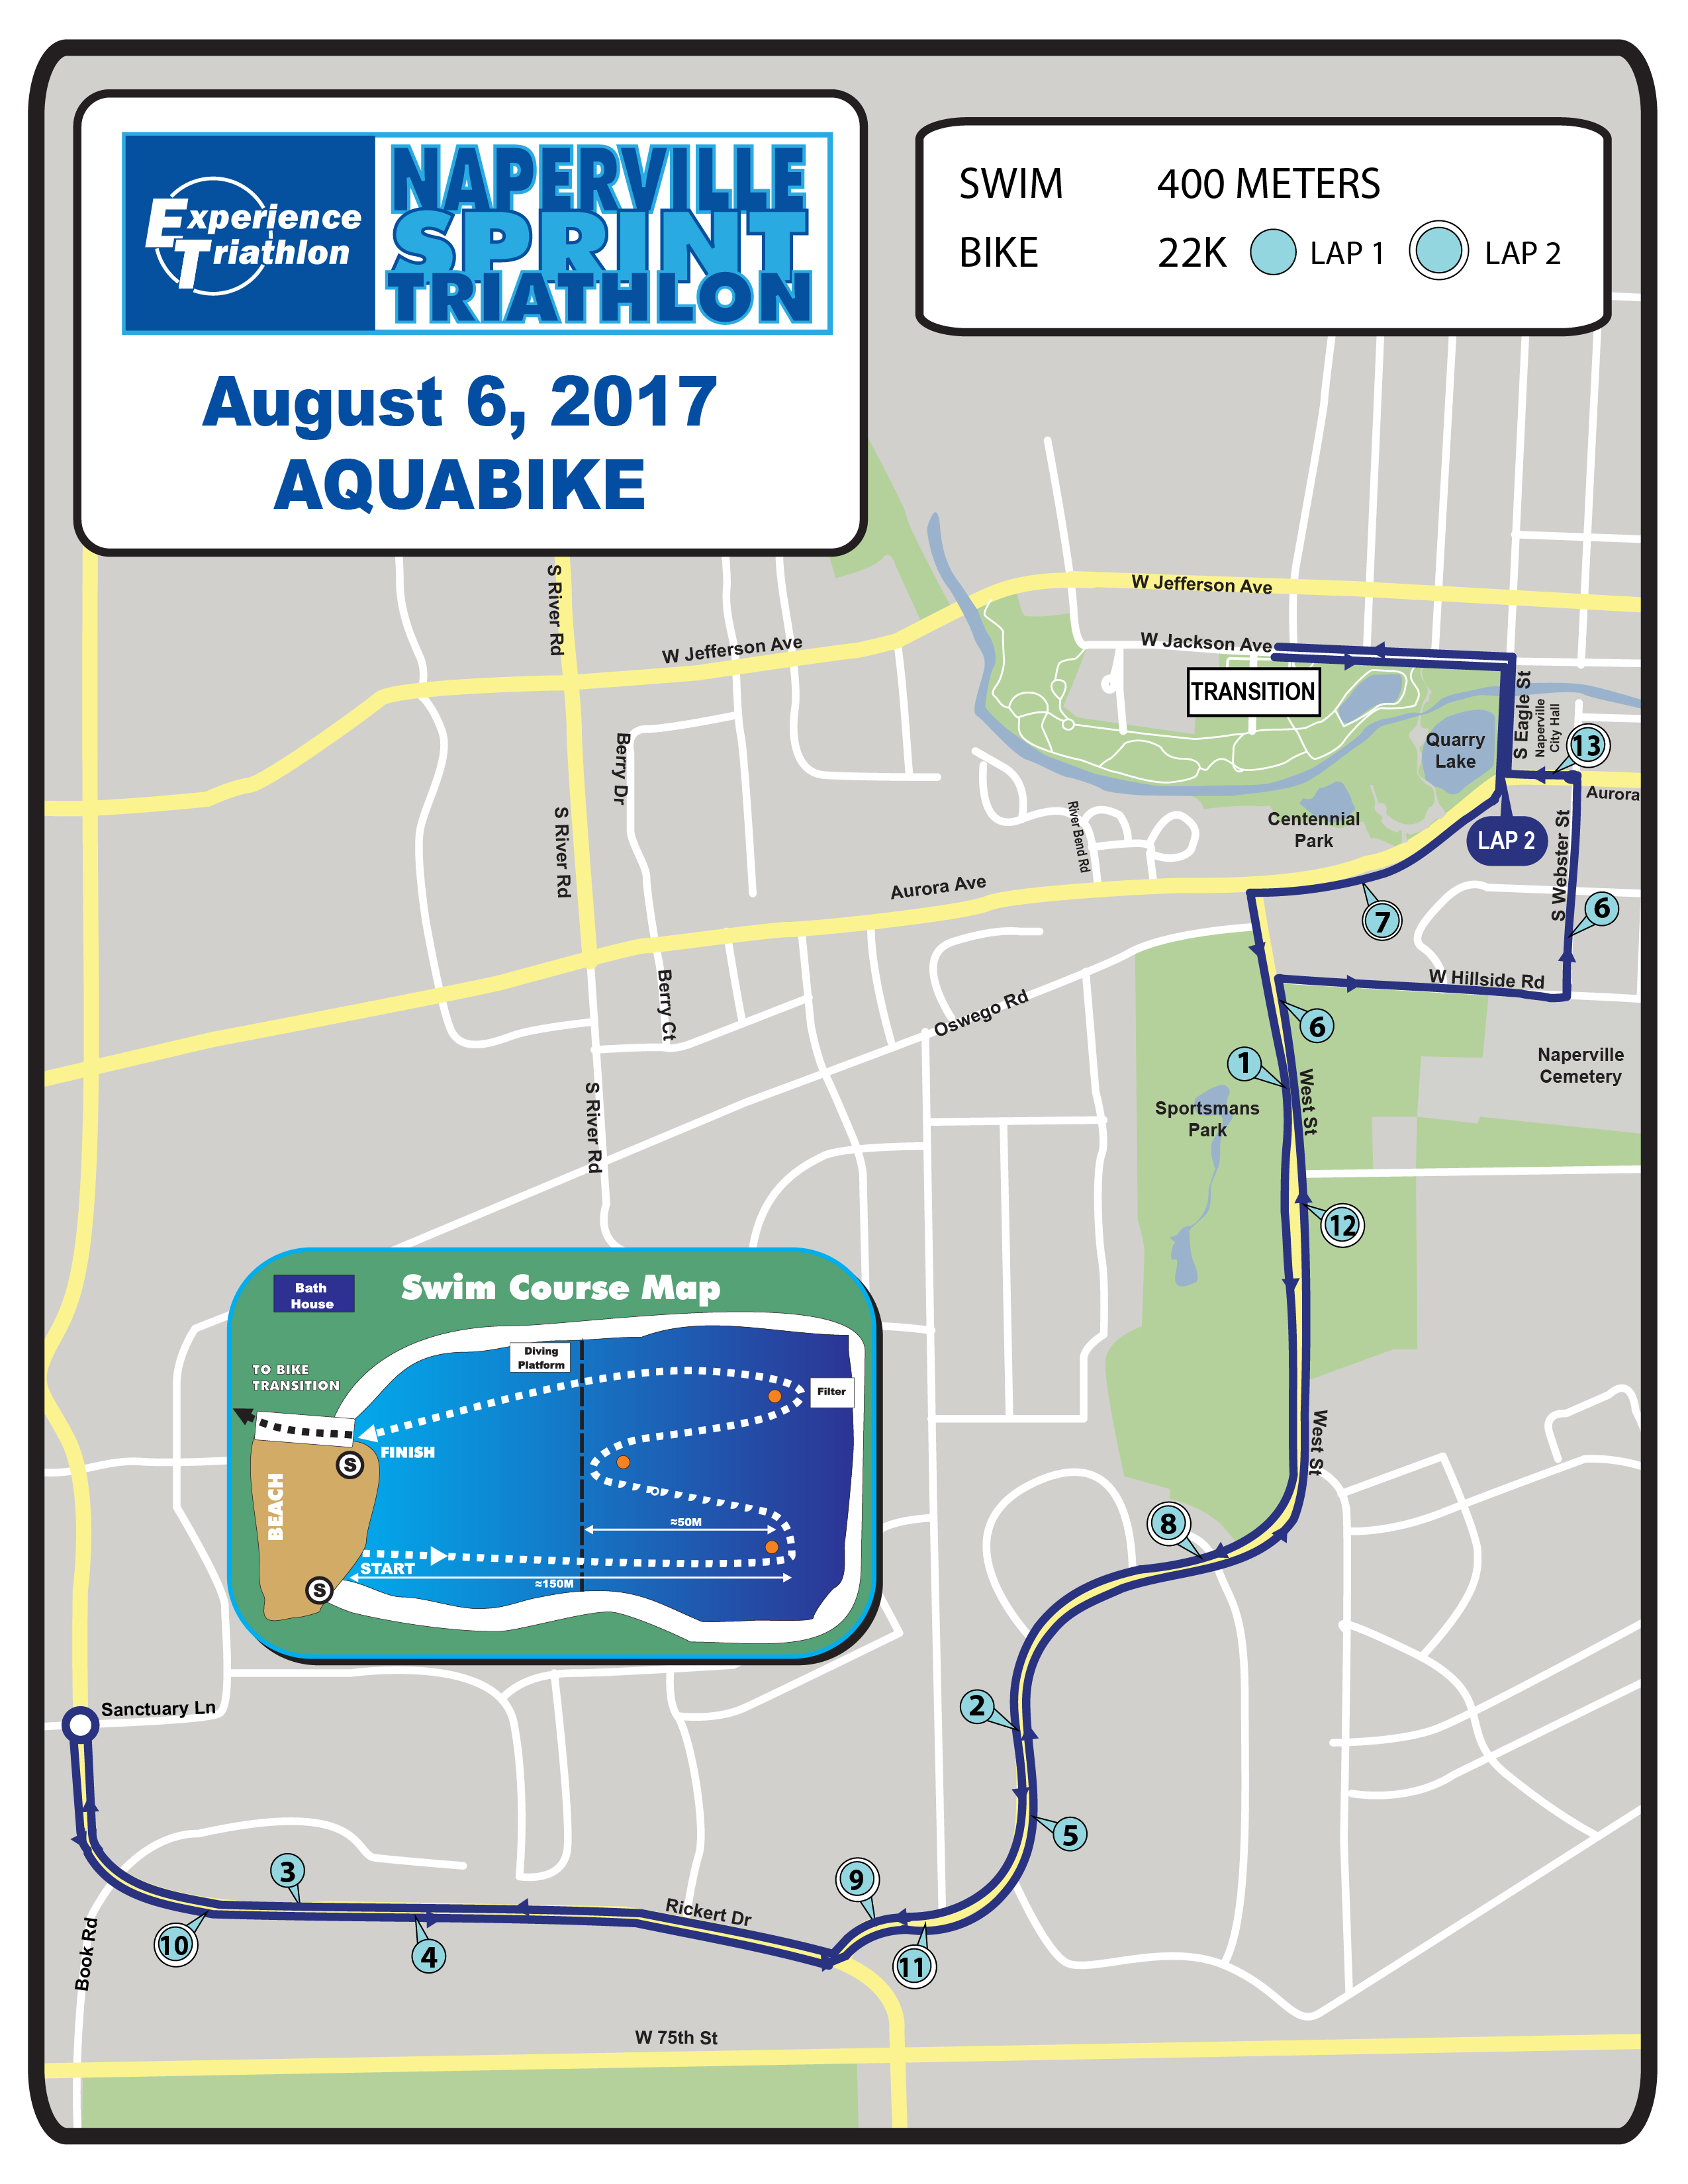 Naperville Sprint Triathon - Aquabike Race Course